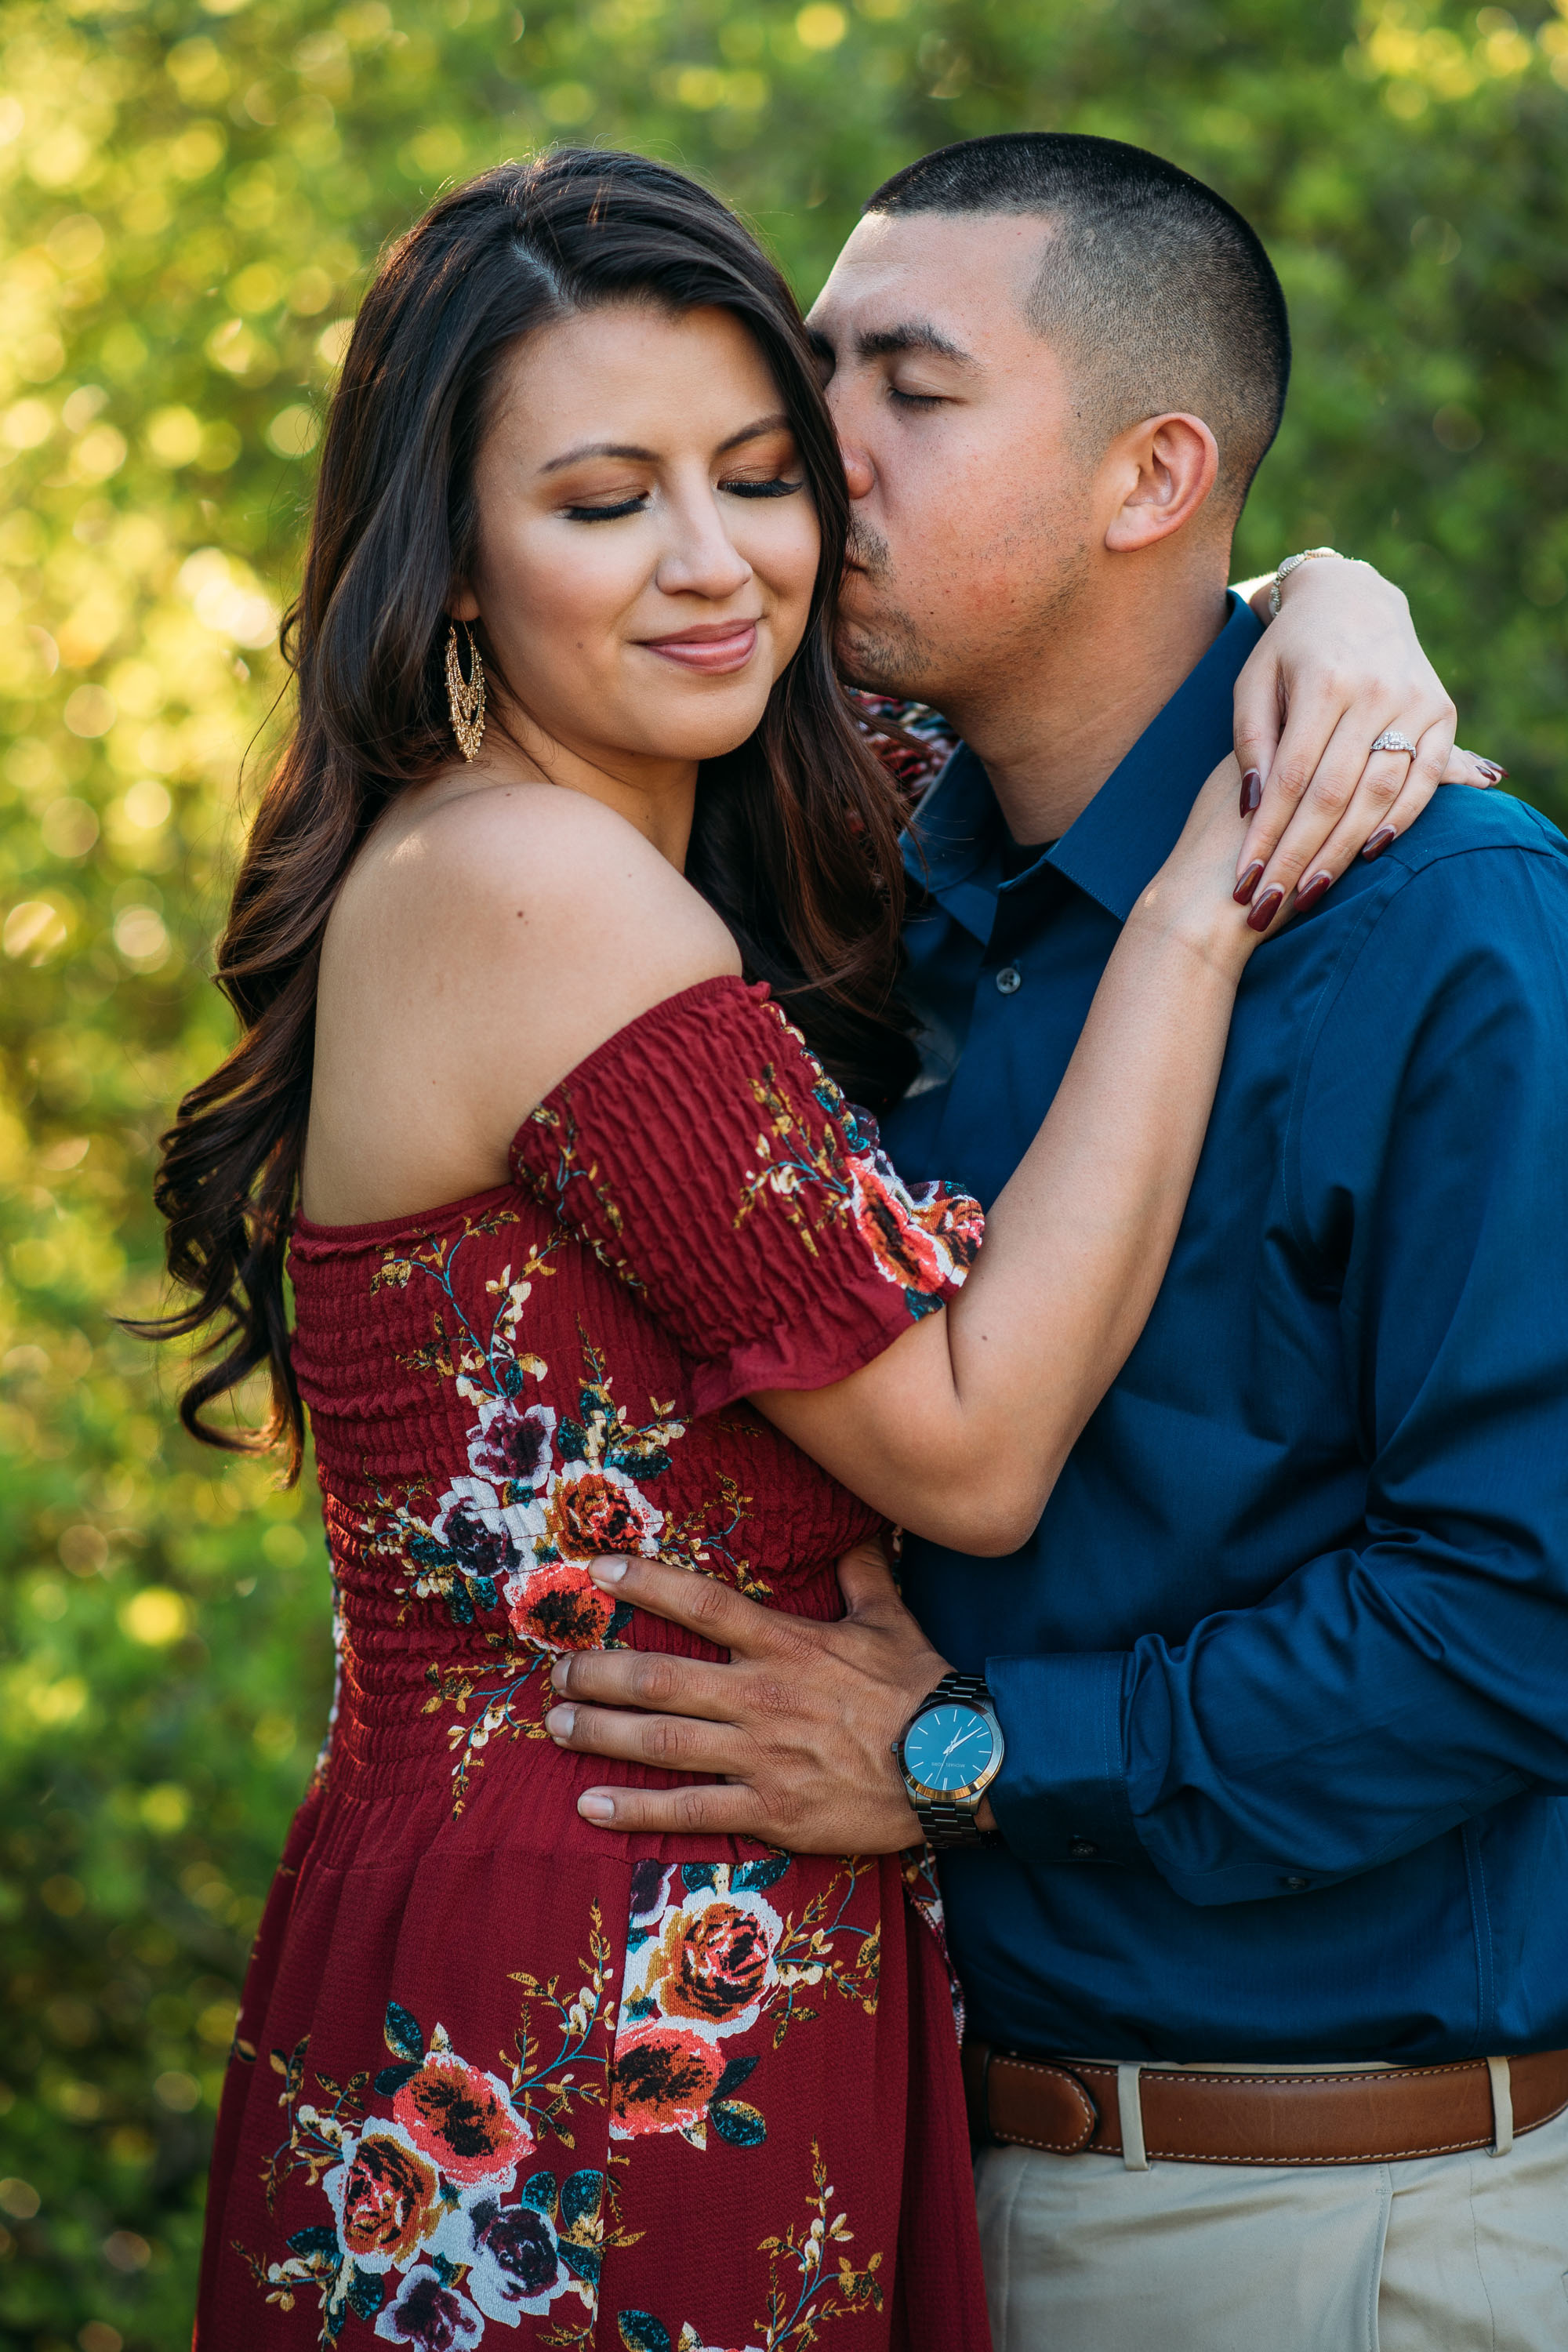 Aggie_Engagement_CollegeStation_LickCreekPark_14.jpg